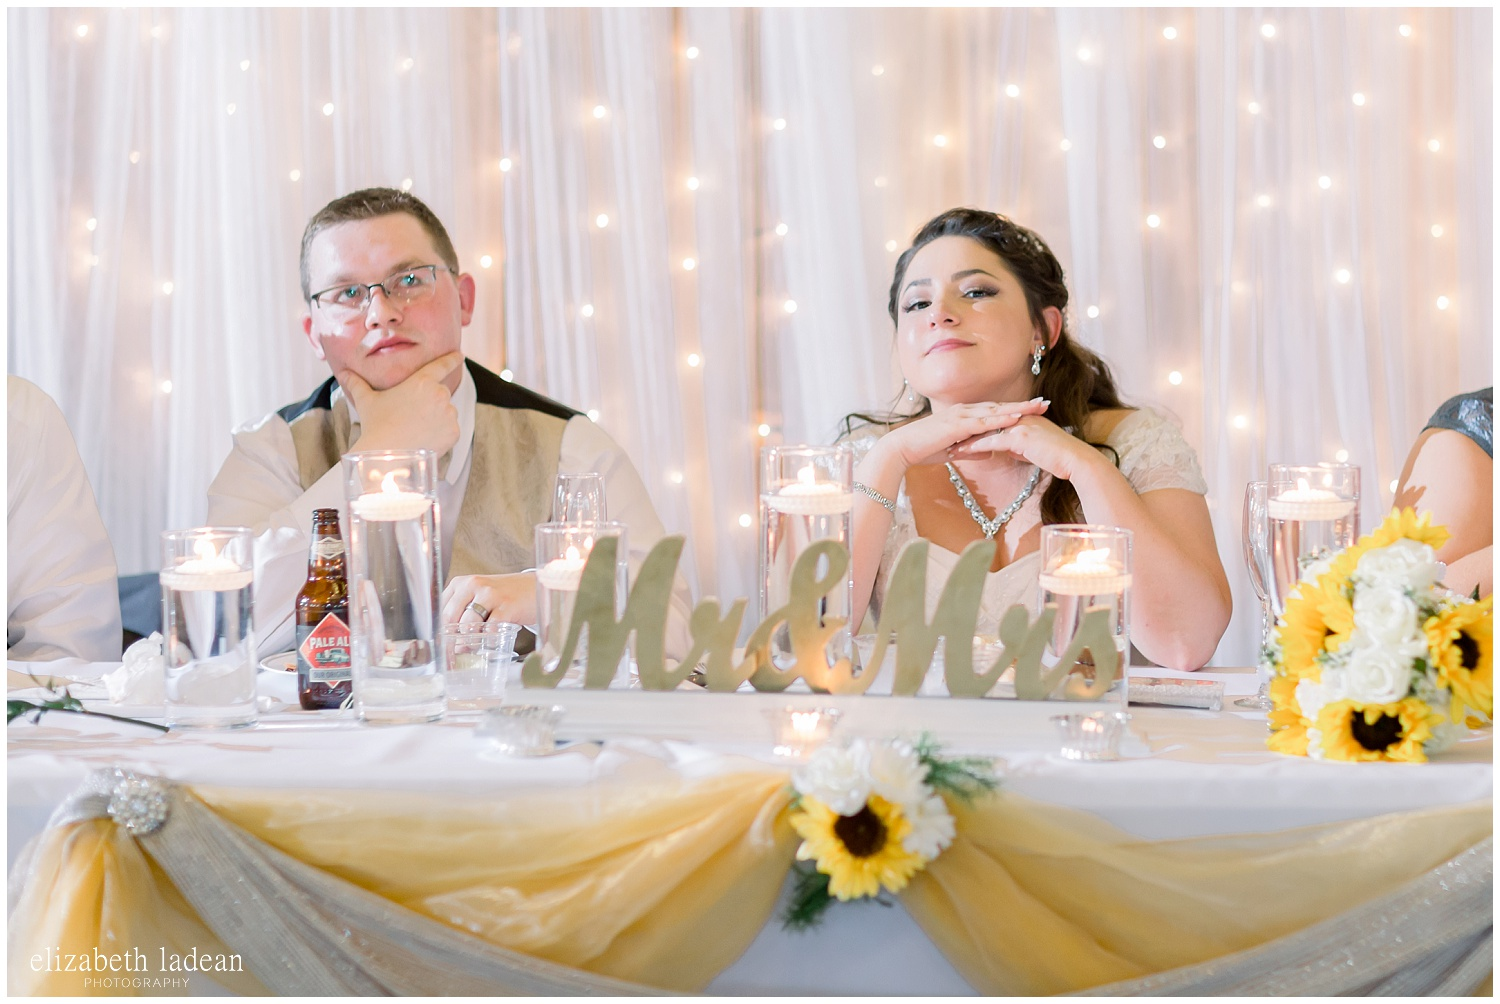 -behind-the-scenes-of-a-wedding-photographer-2018-elizabeth-ladean-photography-photo_3431.jpg